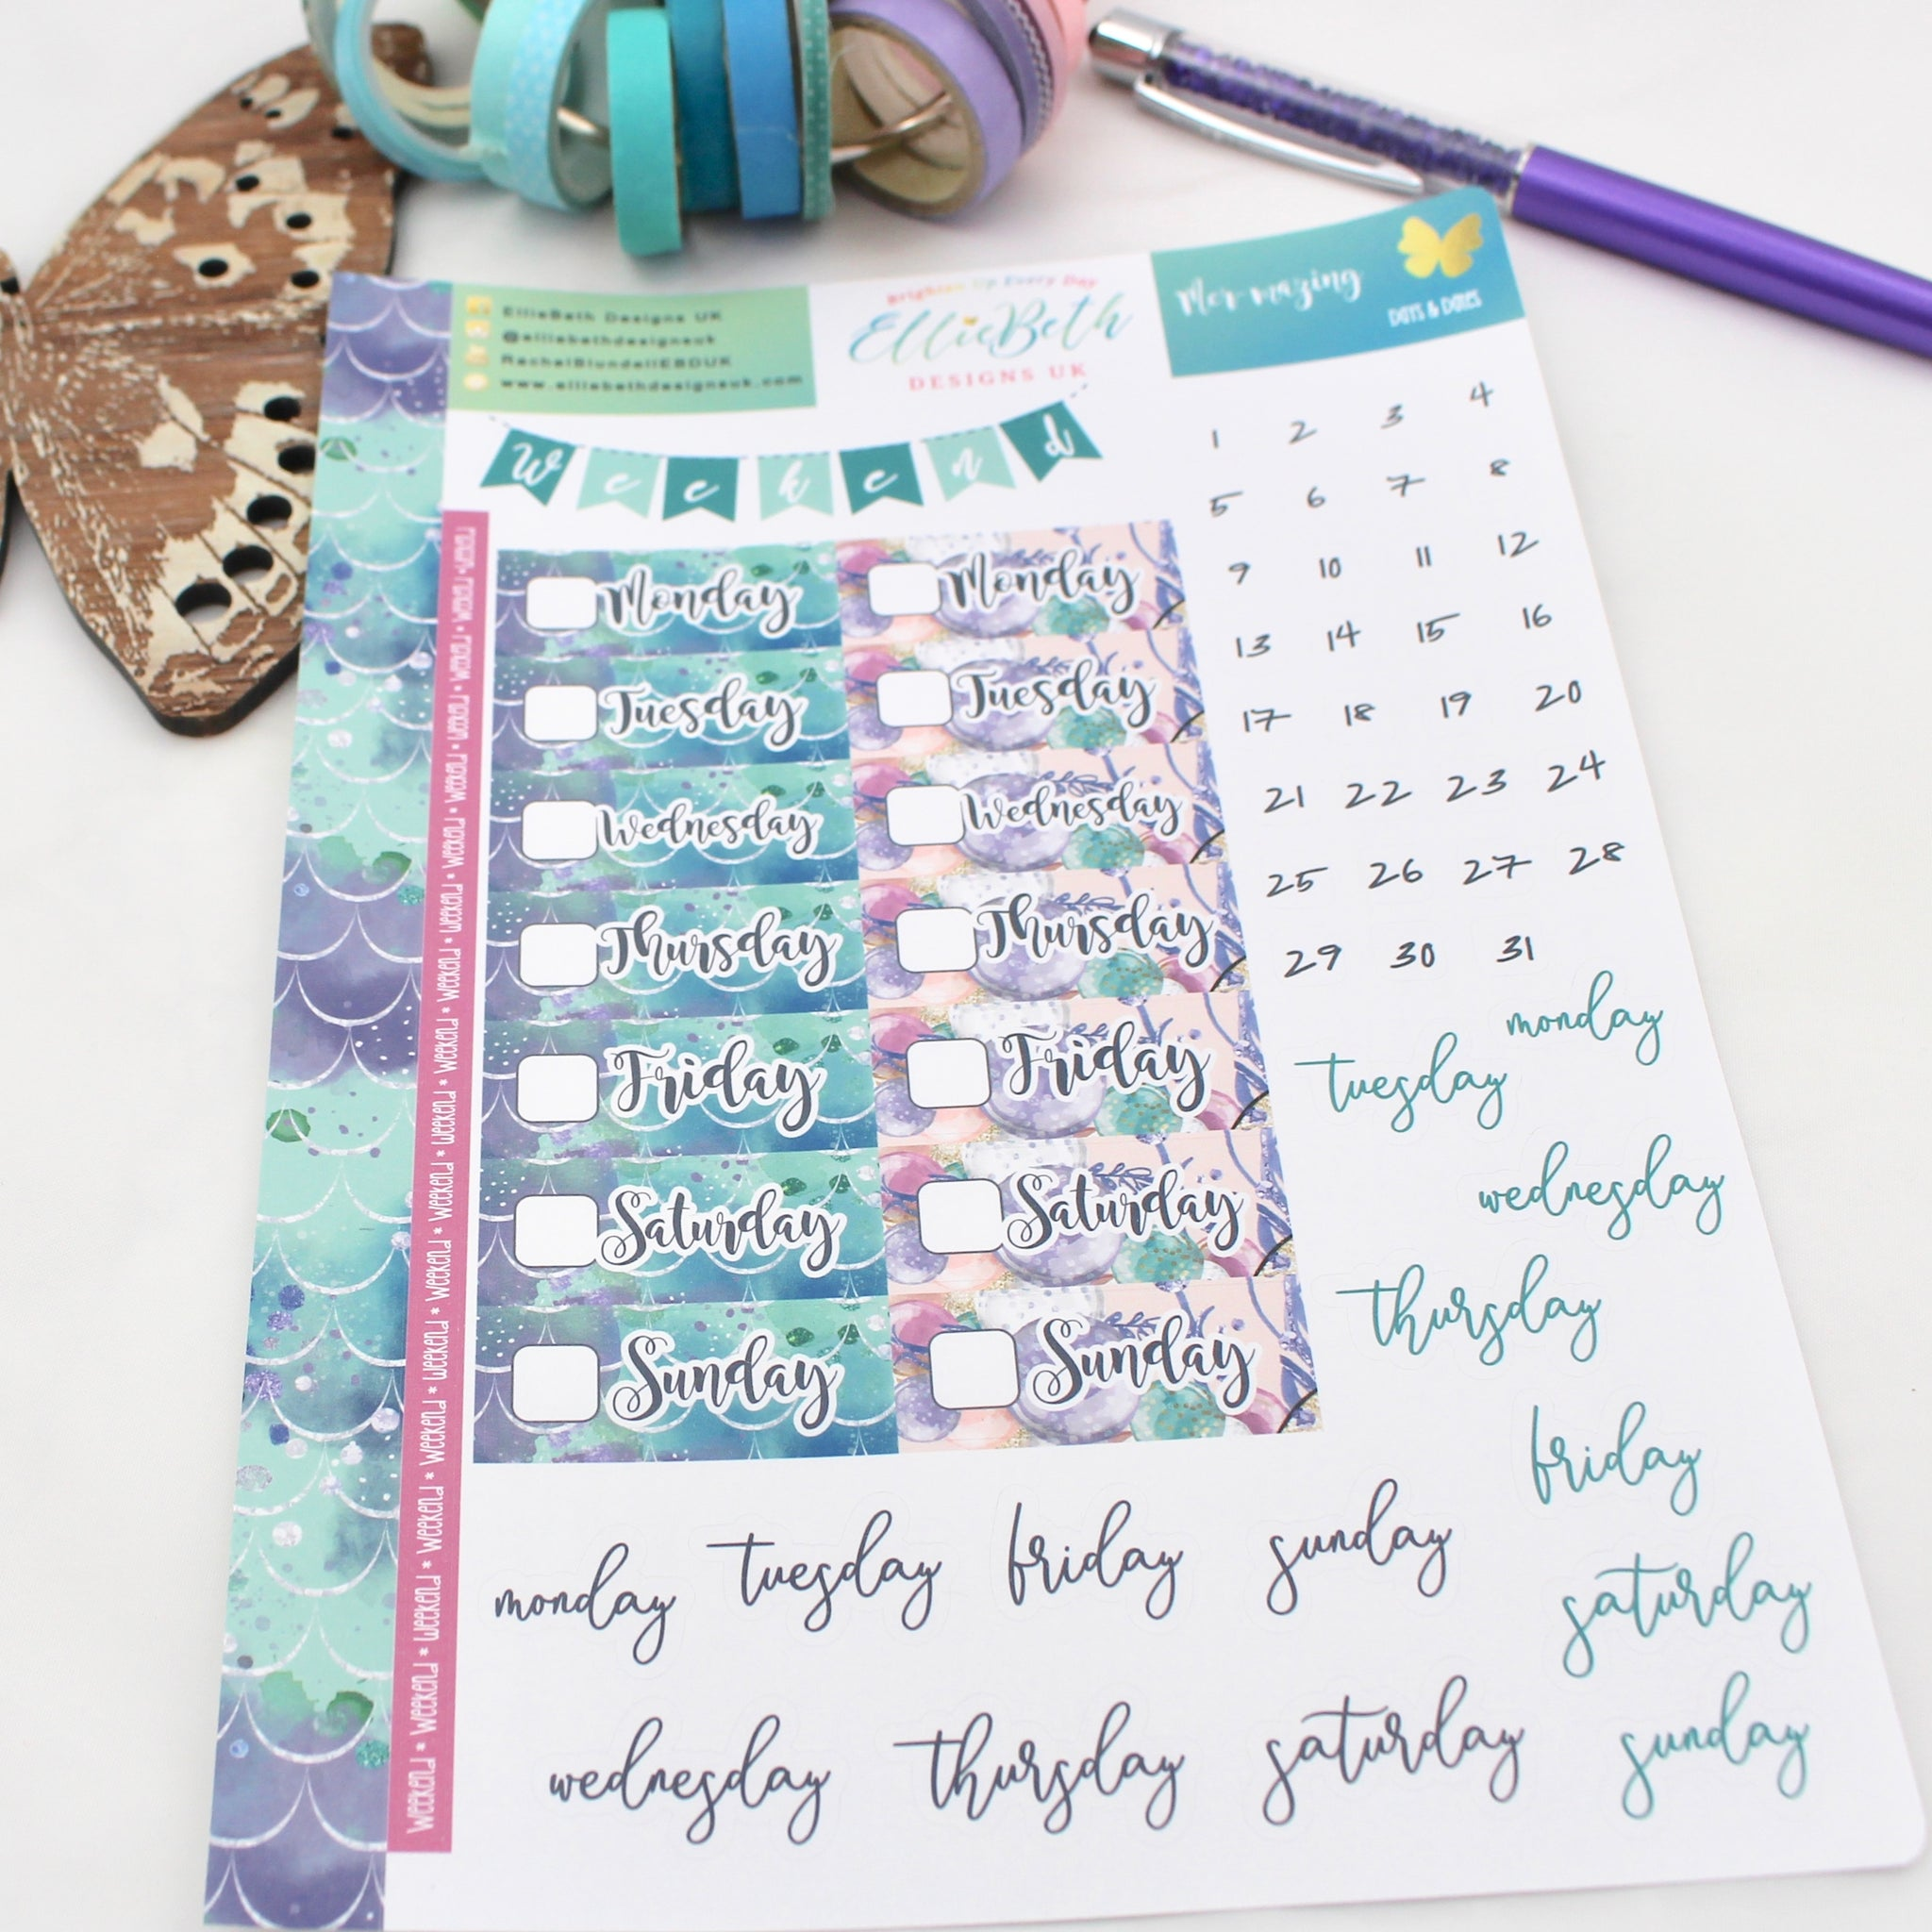 Mer-mazing - Days and Dates - A5 binder ready planner stickers